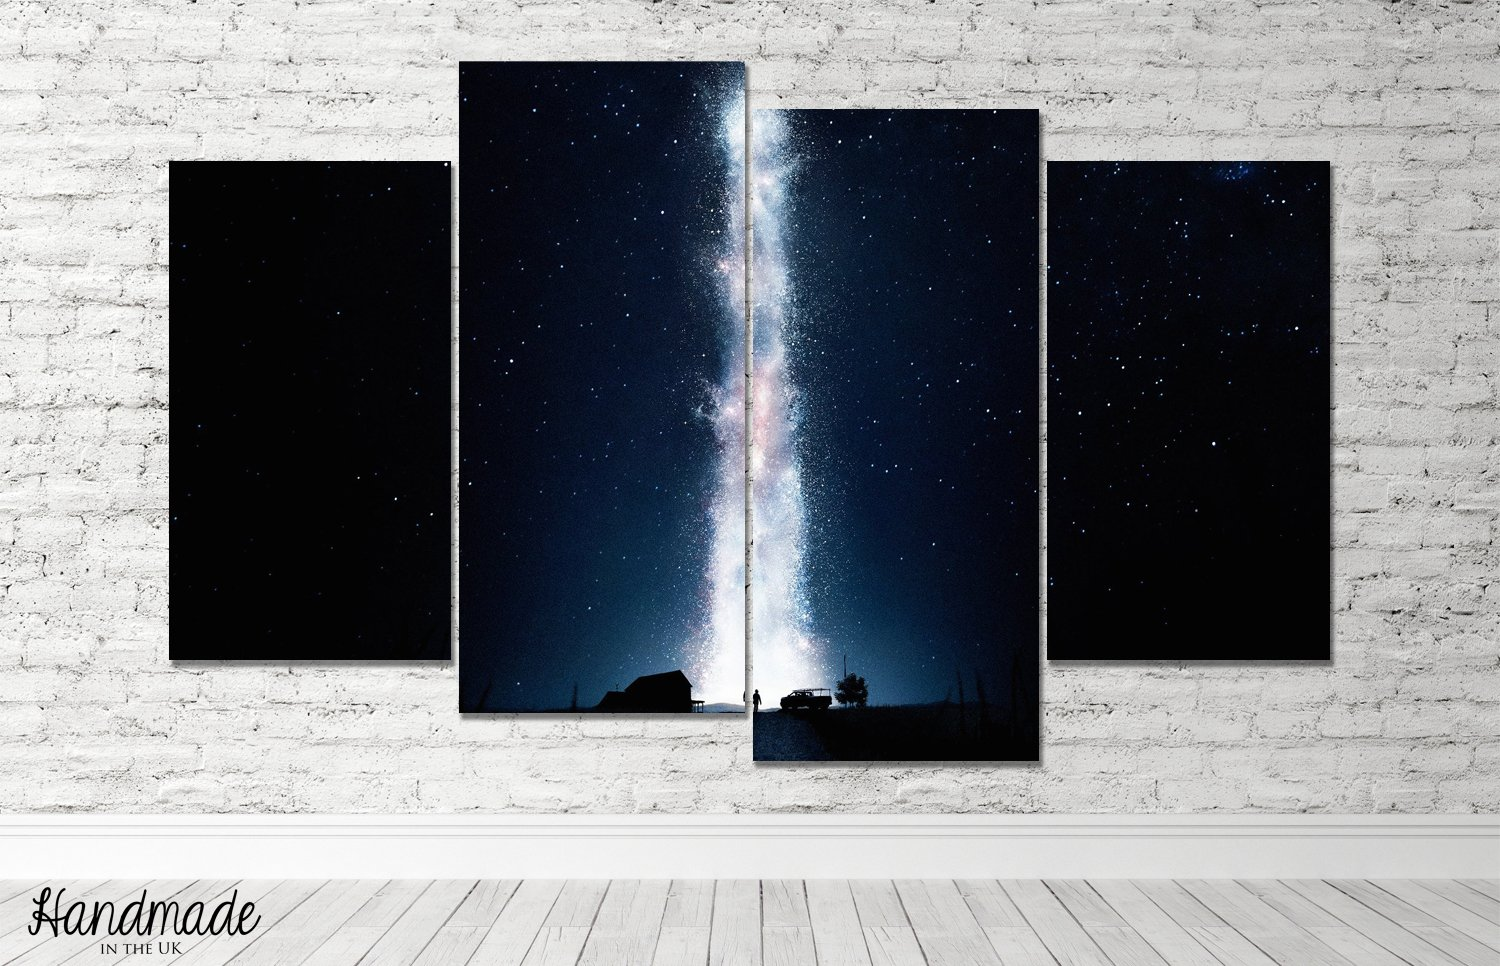 Interstellar Movie Multi Panel Canvas Print Split Wall Art Framed Canvas Handmade Ready To Hang Amazon Co Uk Handmade